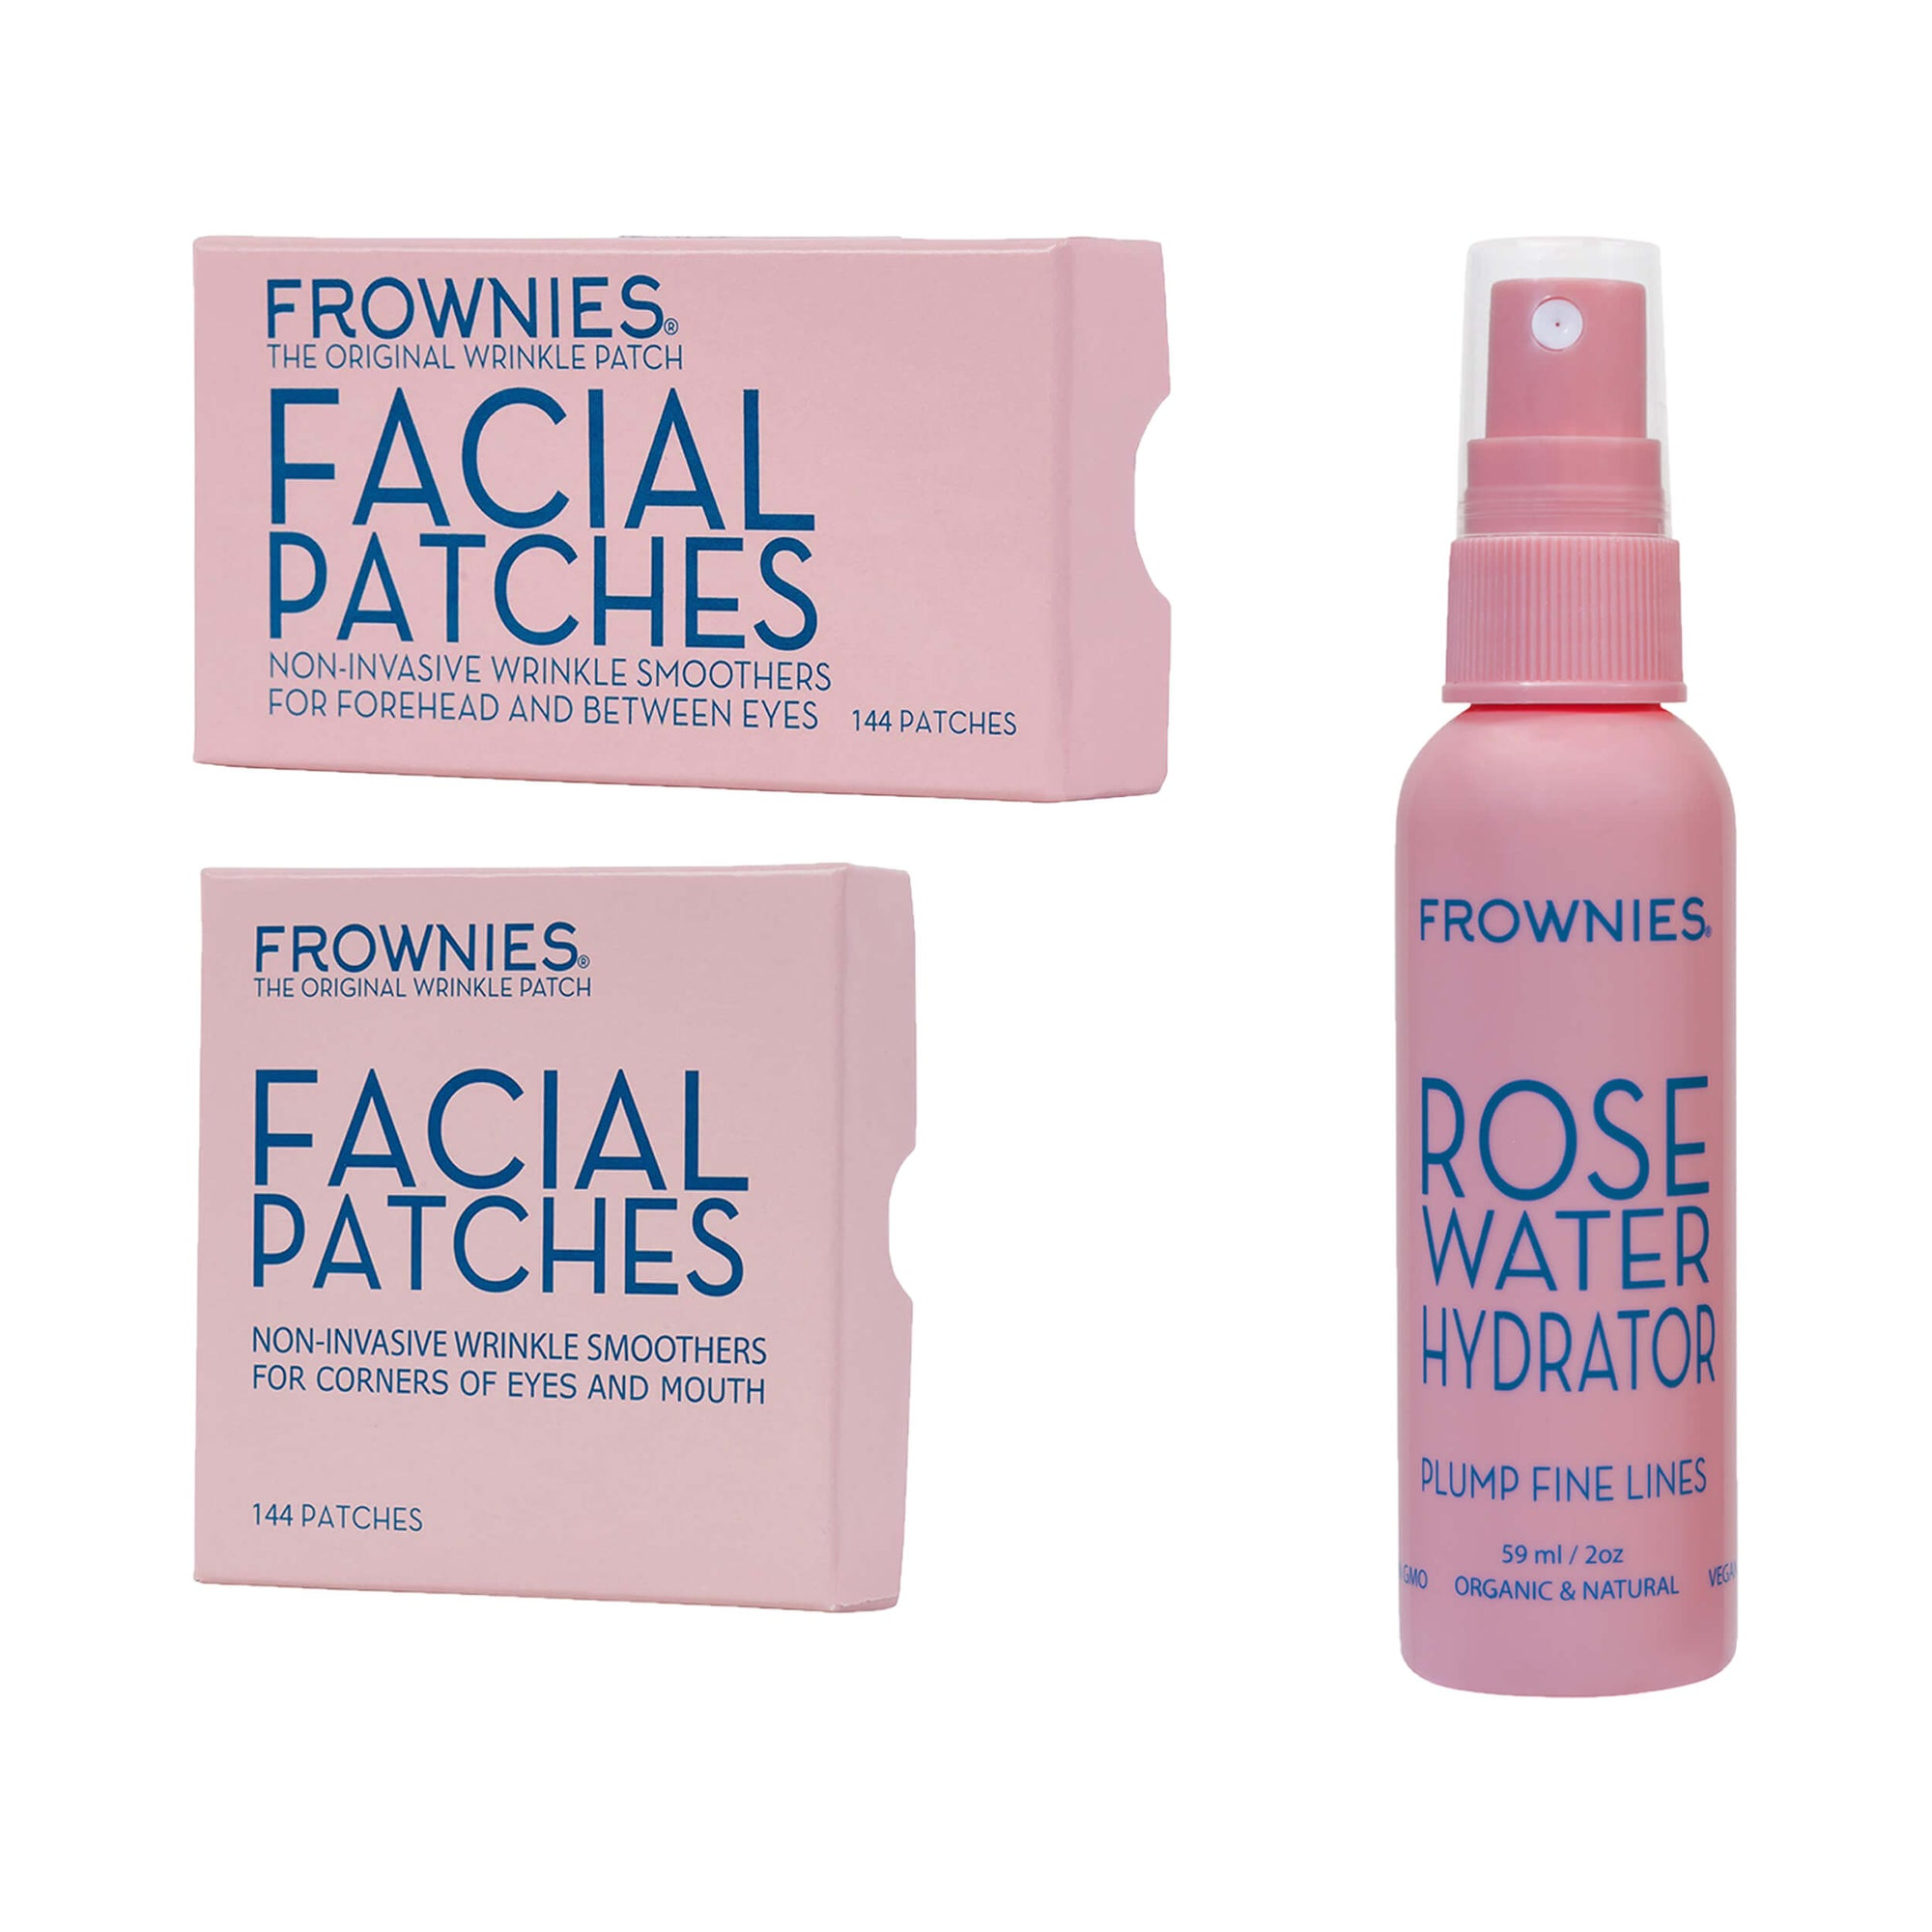 Frownies Corners of Eyes & Mouth (CEM) Forehead & Between Eyes (FBE) Rose Water Hydrator Activator Spray Combo